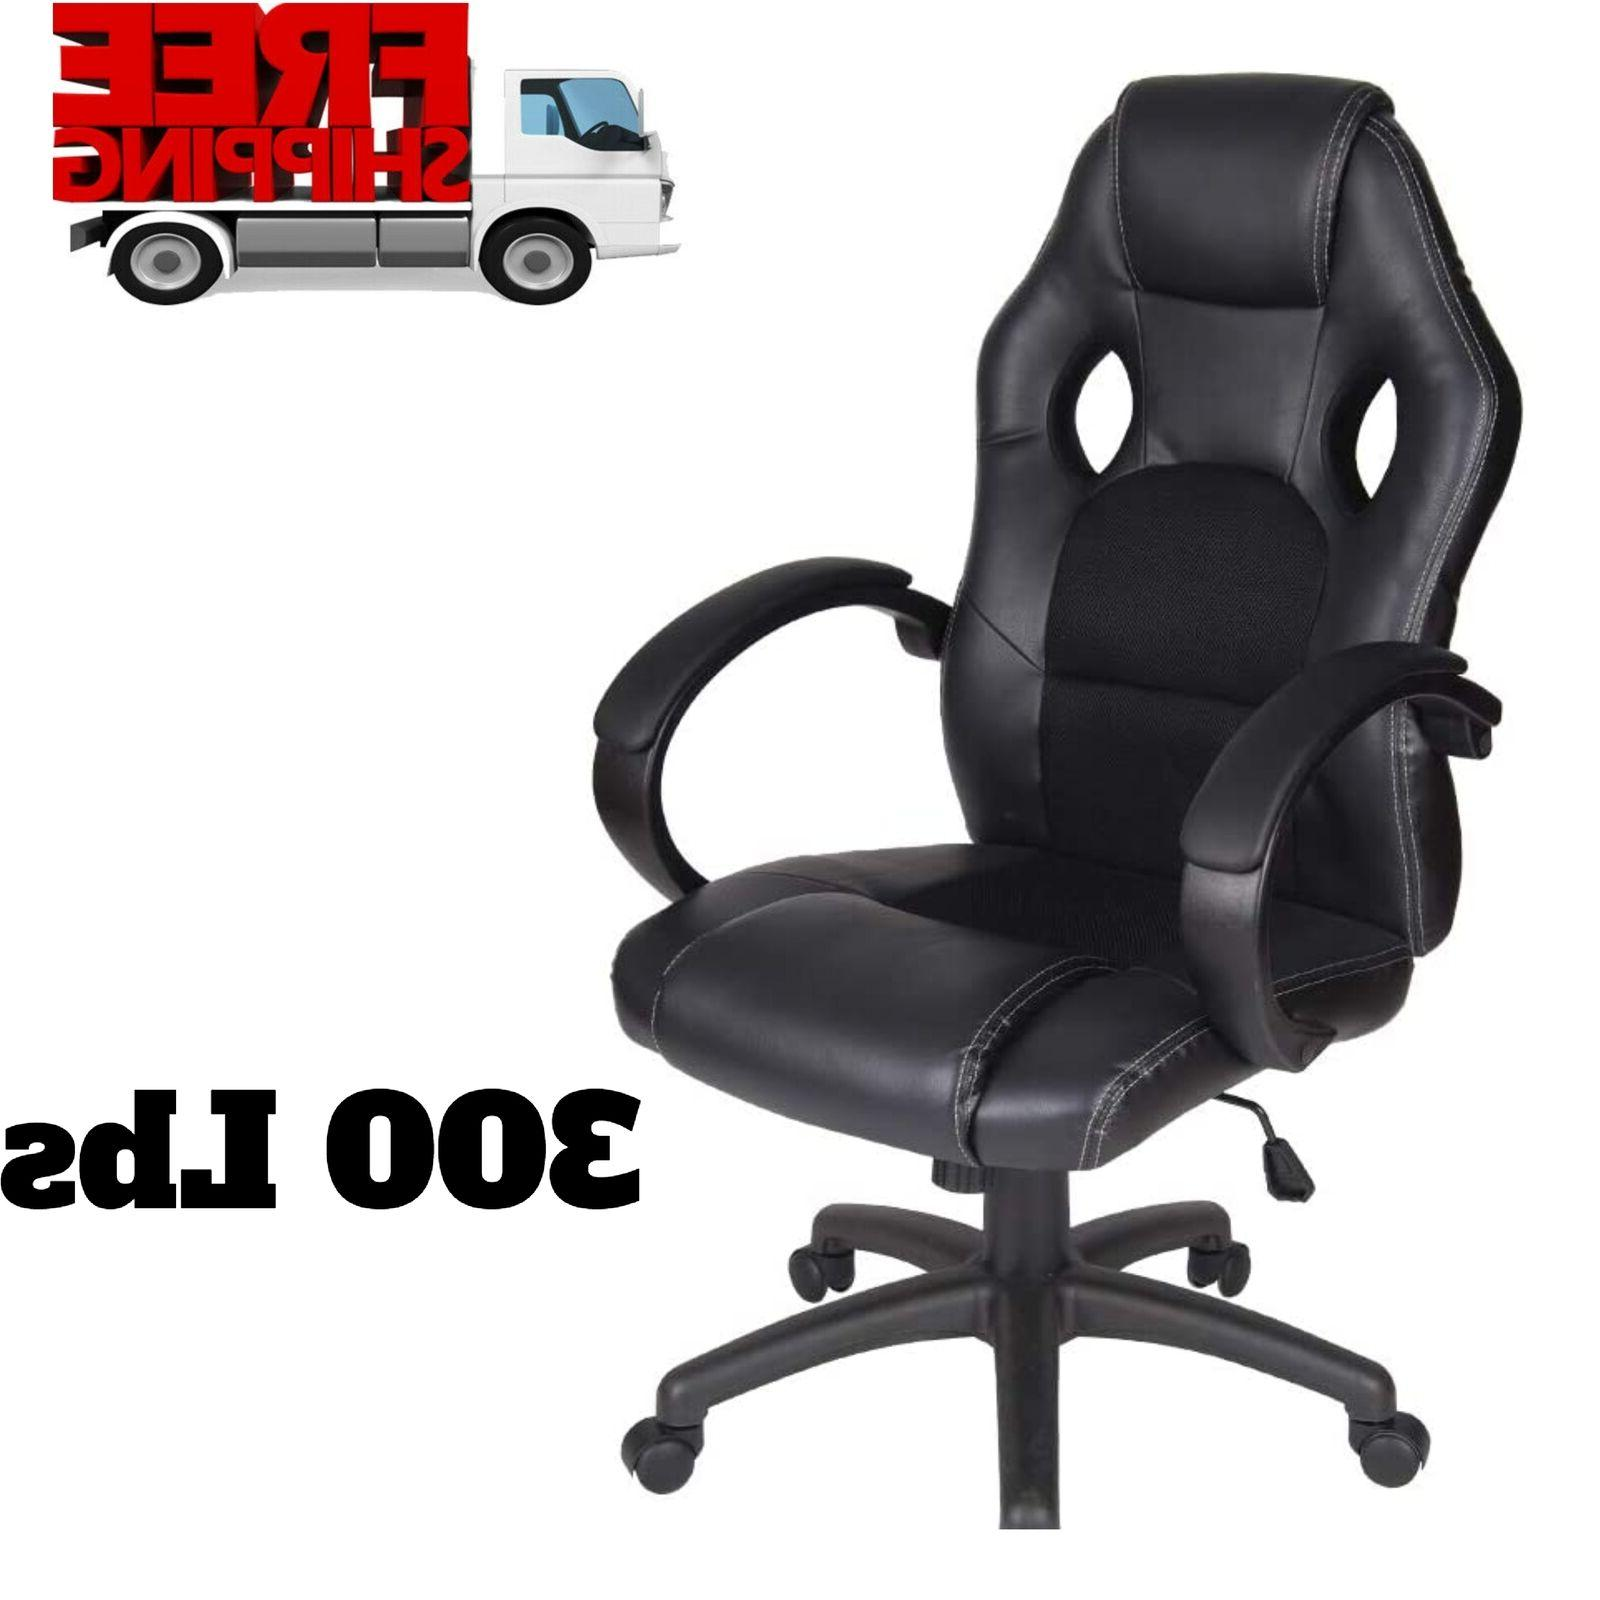 300 lbs gaming chair executive ergonomic office